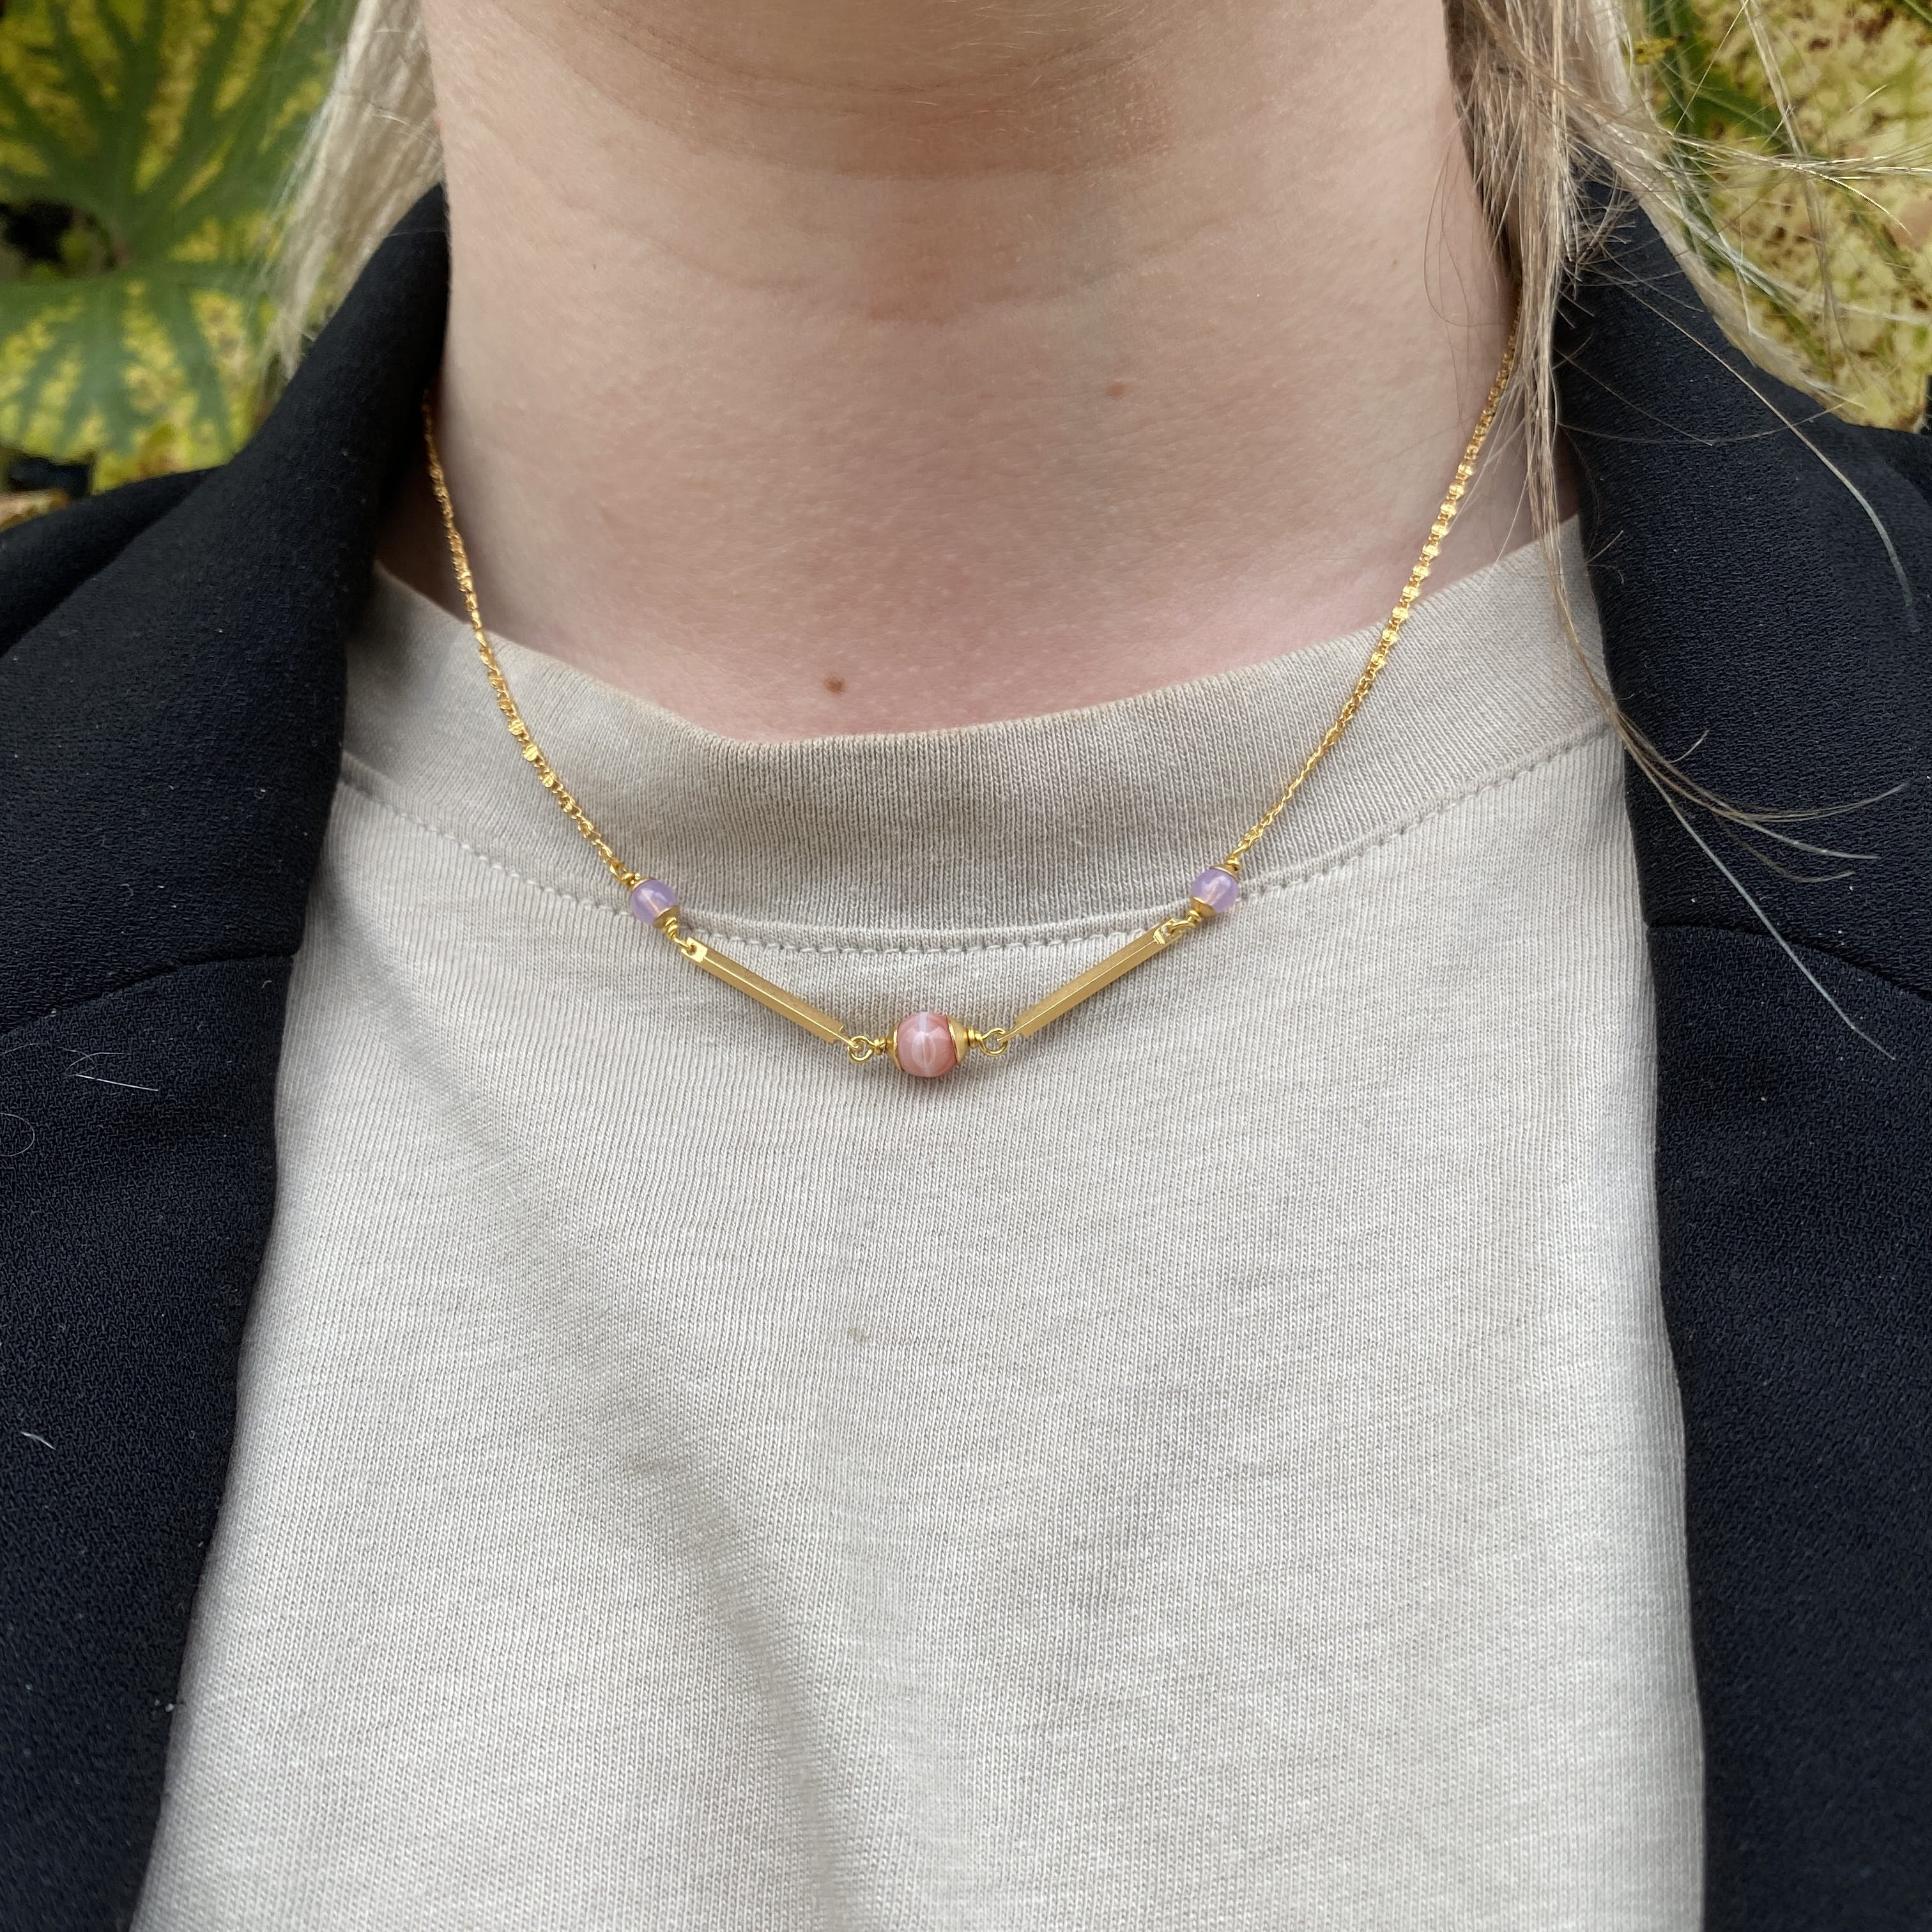 Polly Necklace von Pico in Vergoldetes Messing